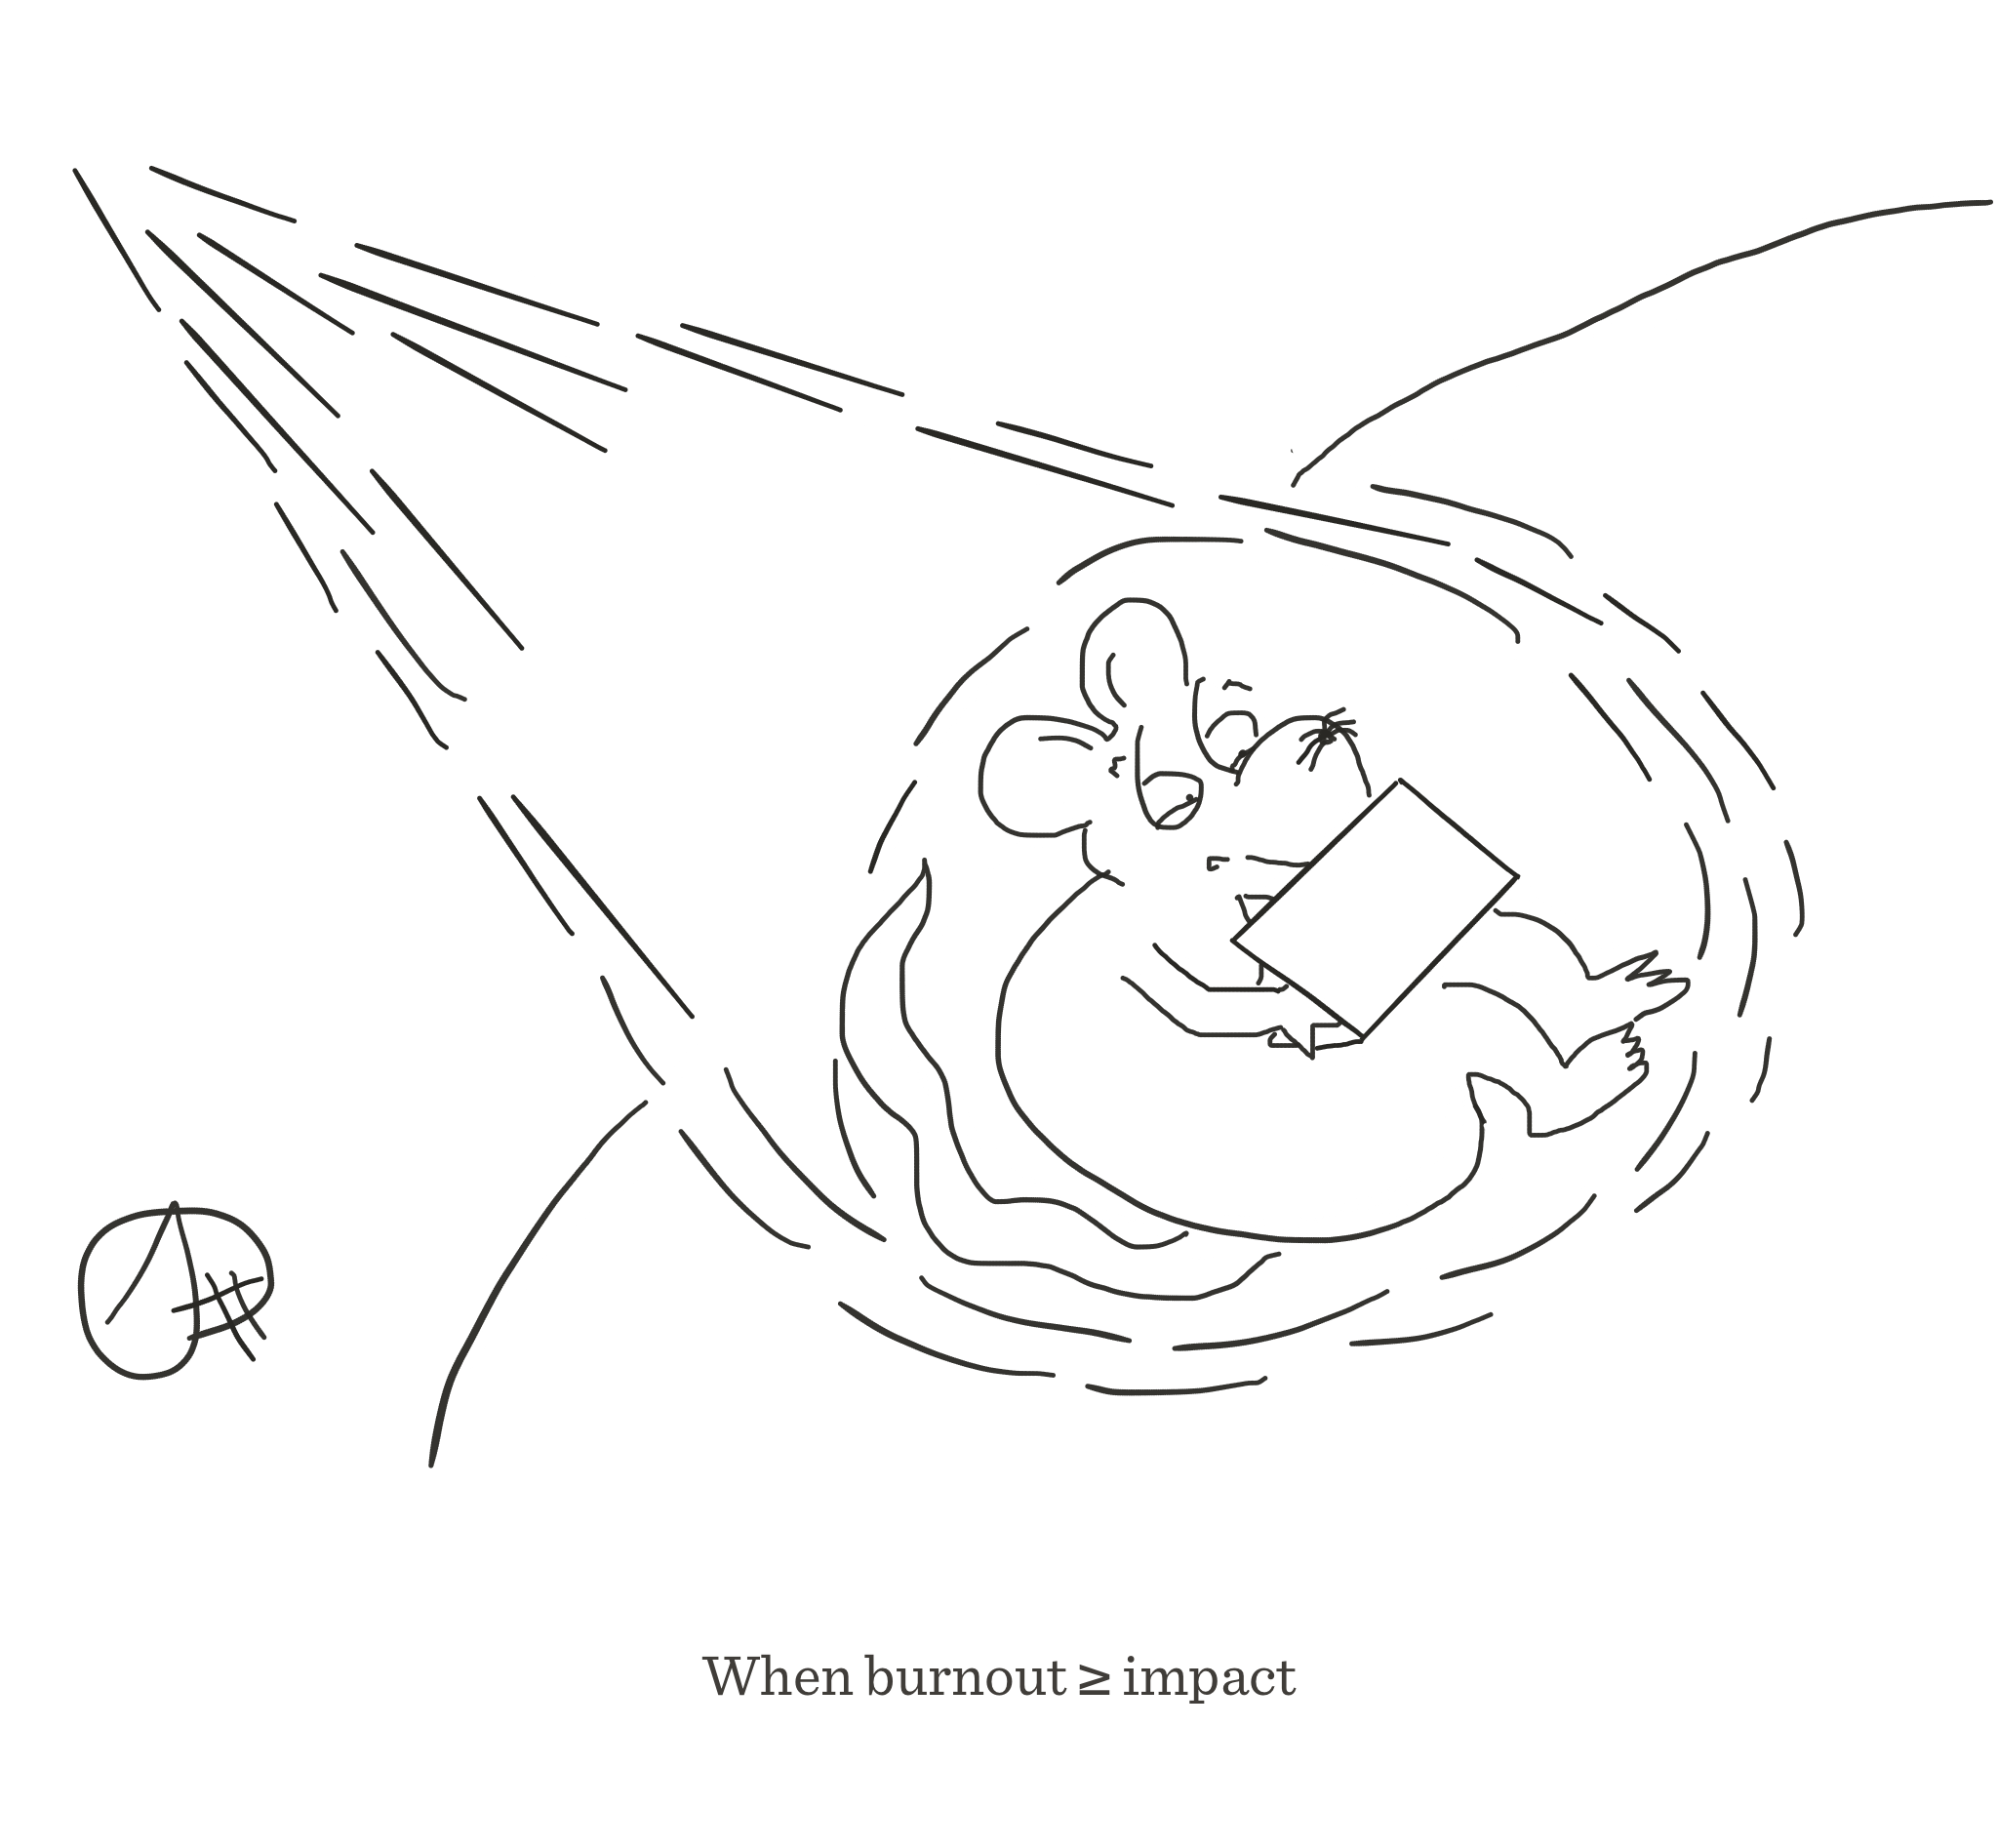 When burnout ≥ impact, The Happy Rat cartoon